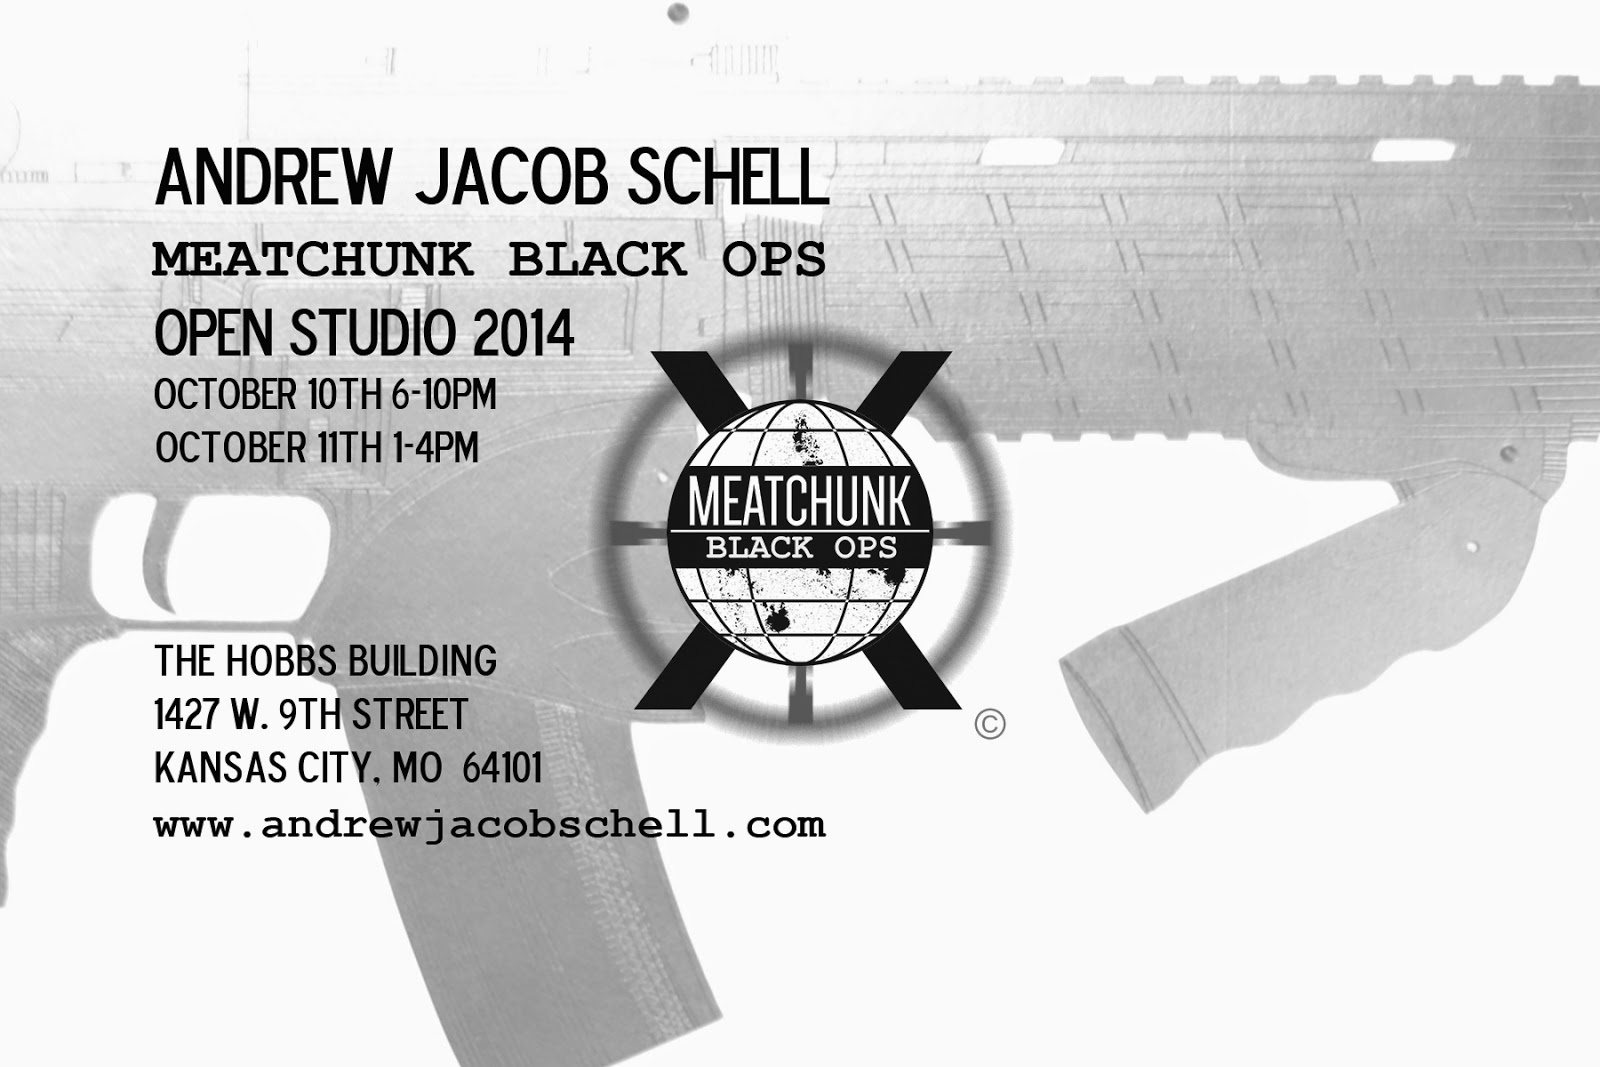 Andrew Jacob Schell